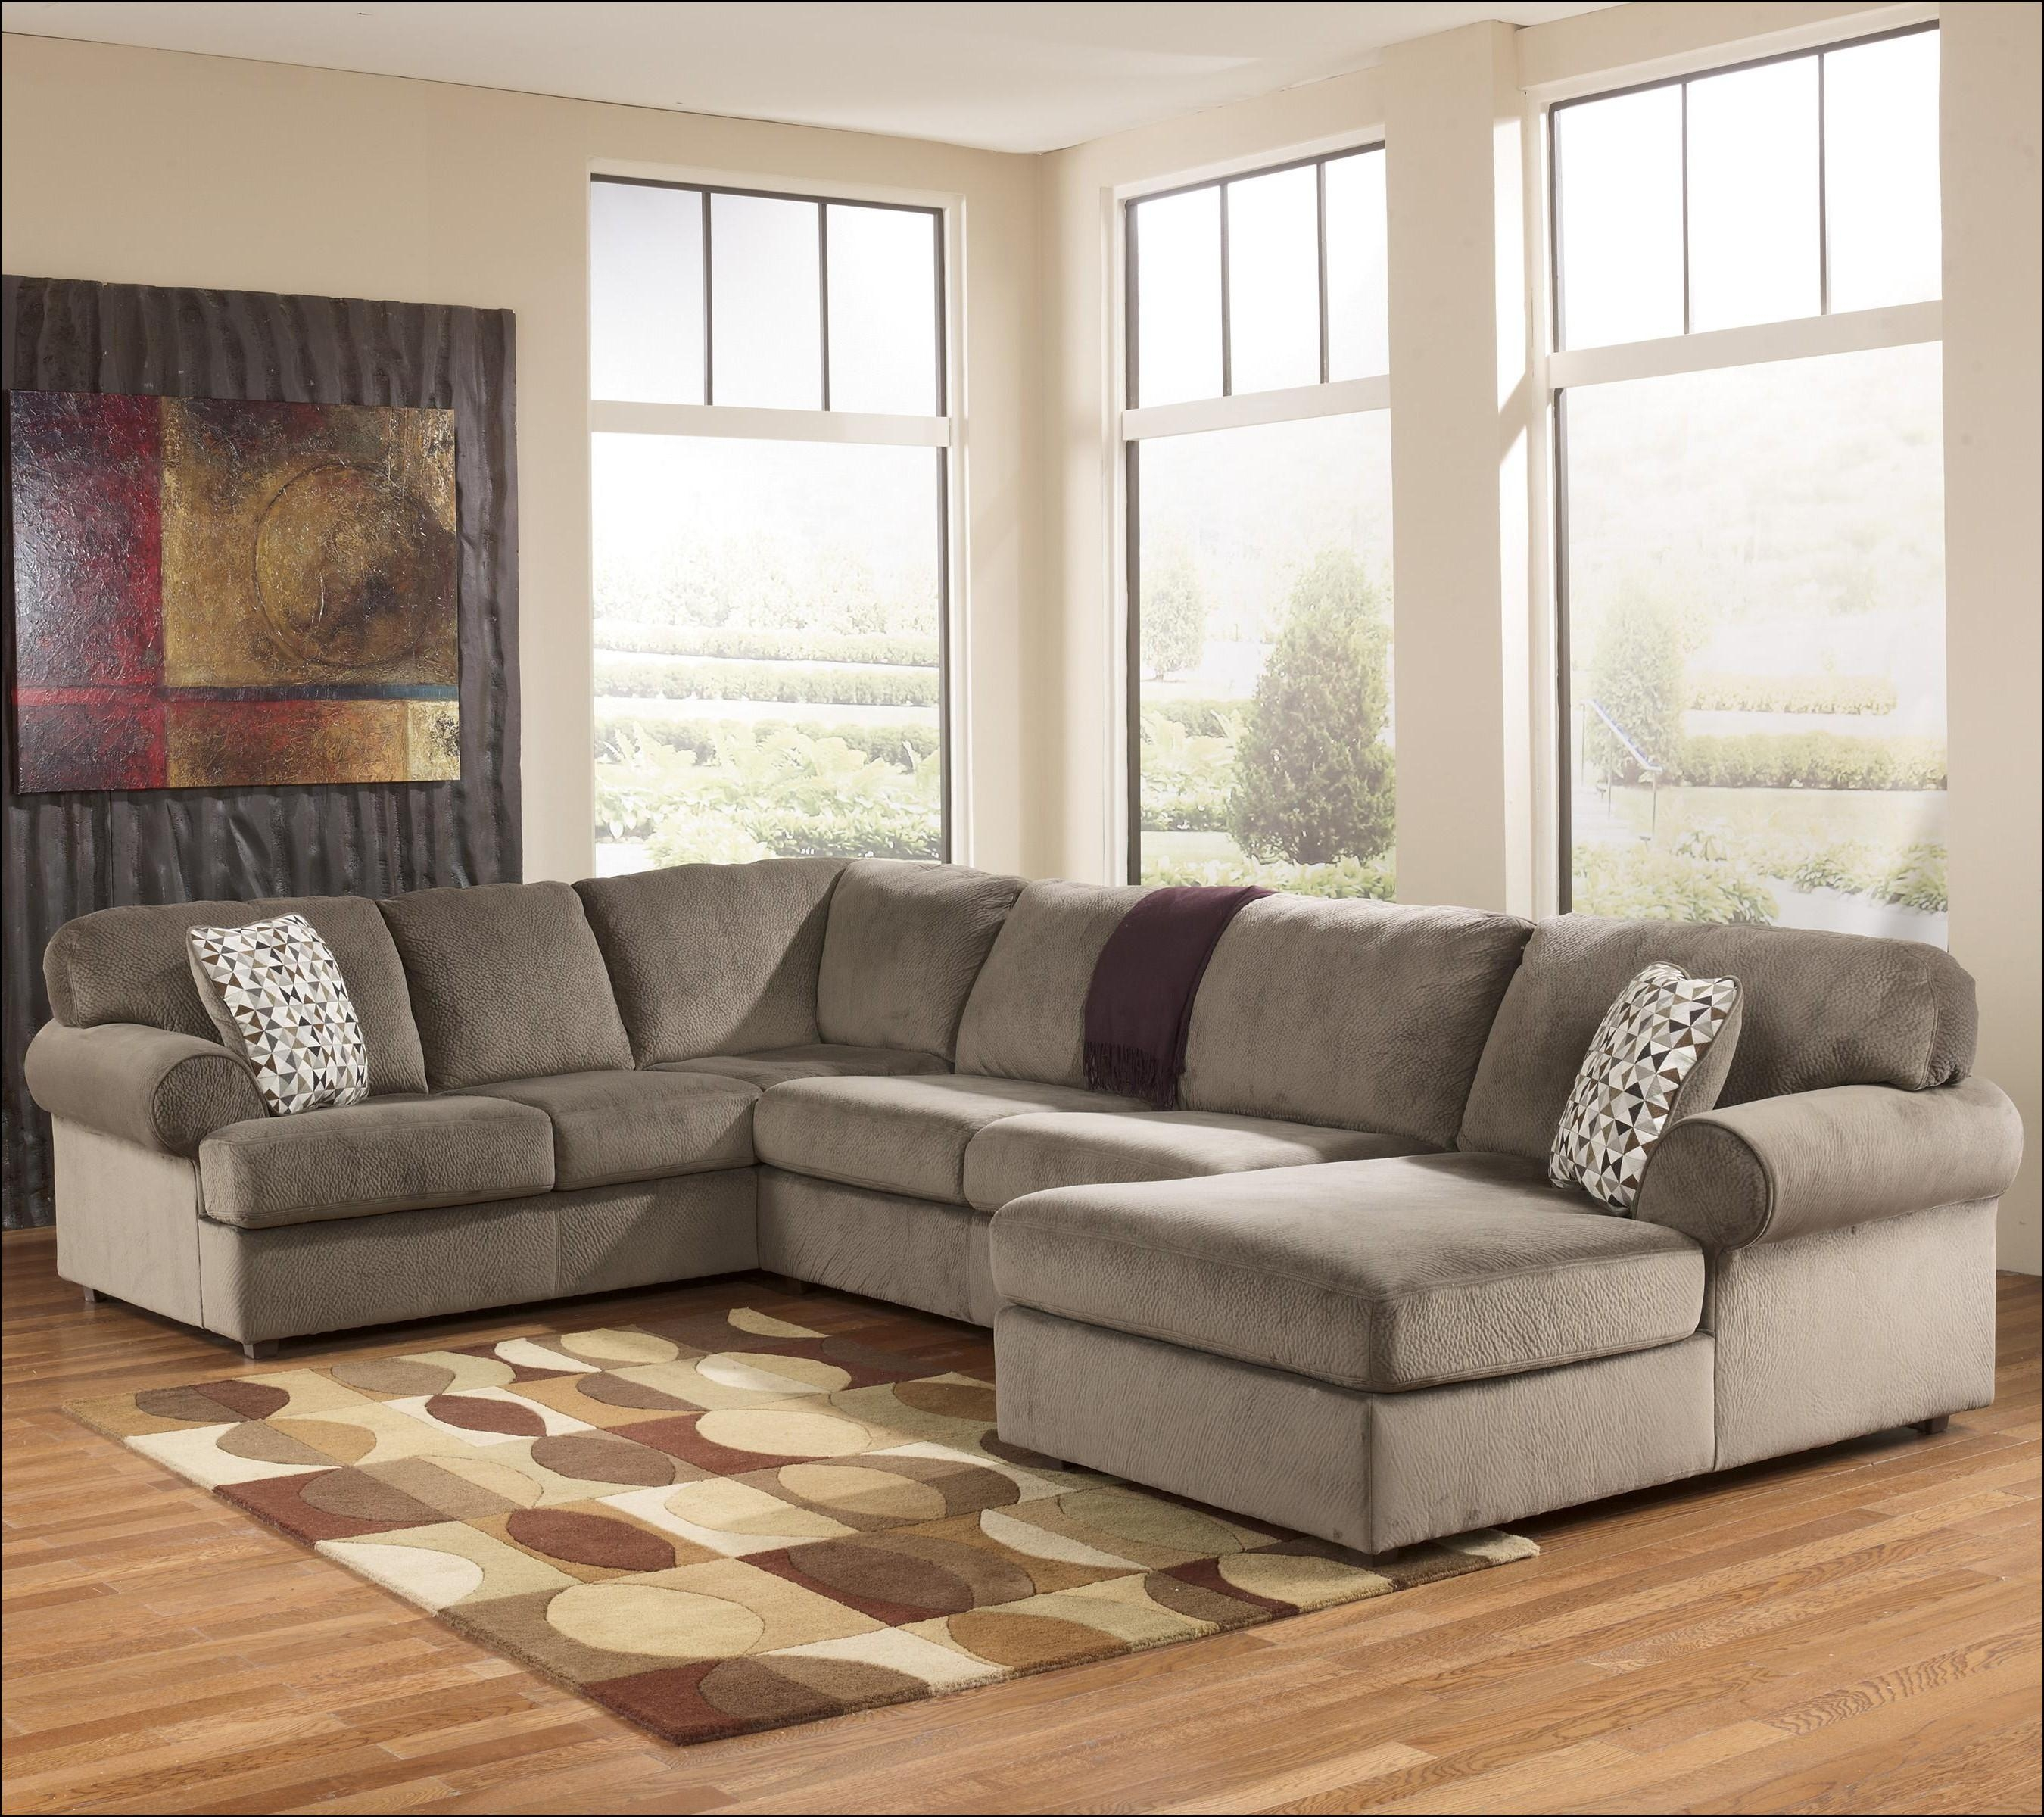 Furniture: Craigslist Coffee Table | Sectional Sleeper Sofa With Regard To Craigslist Sectional Sofas (Image 2 of 20)